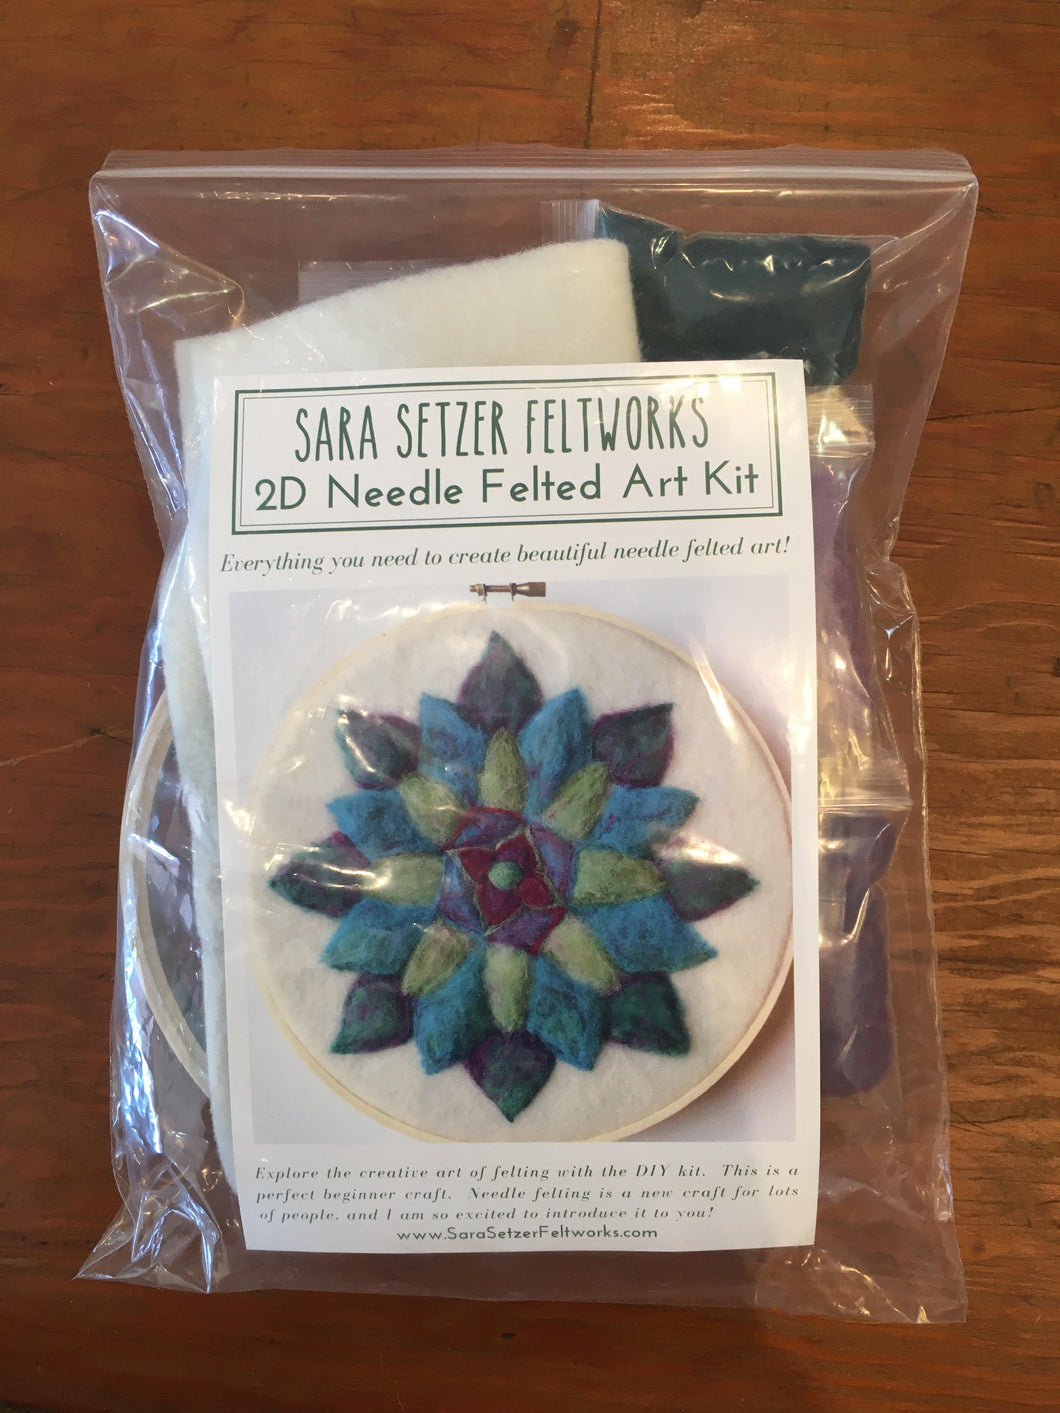 Sara Setzer Feltworks 2D Needle Felted Art Kit